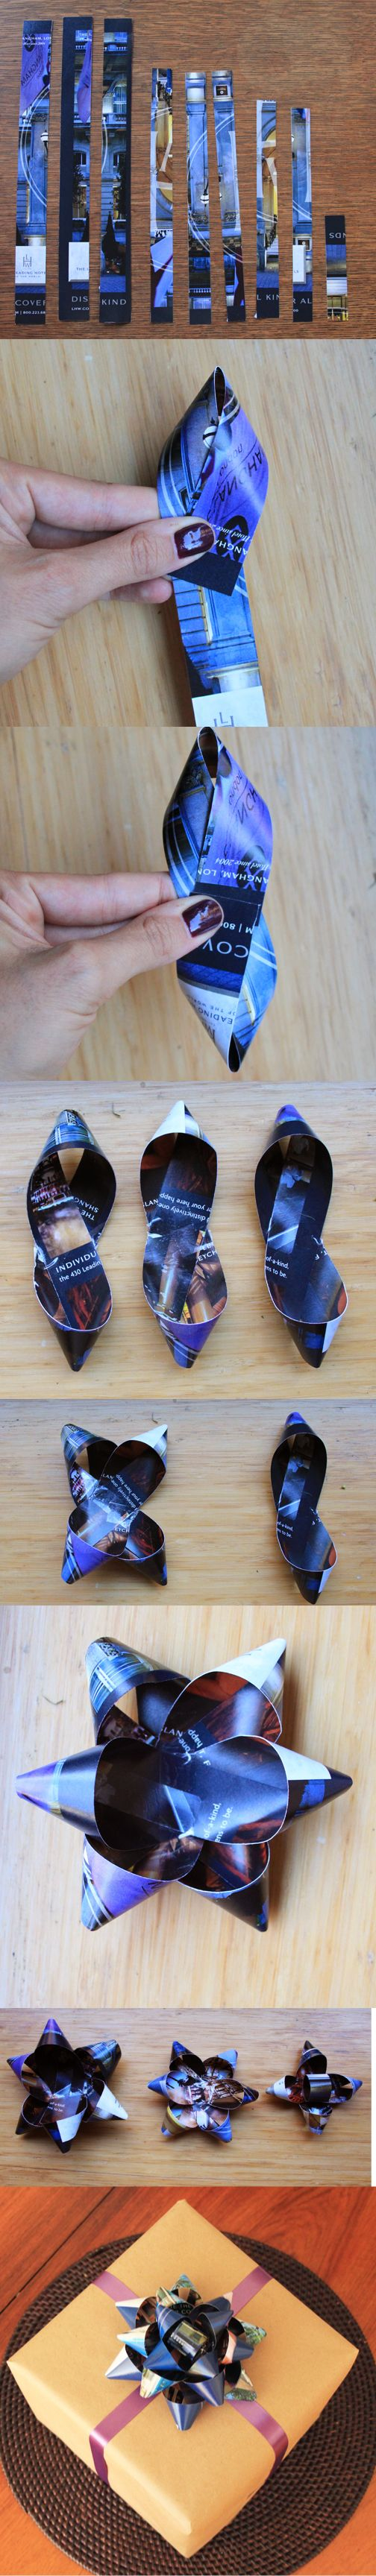 How to make a gift bow // Life is Made with Katie Miles // www.lifeismade.com  #package #bow #diy #recycle #upcycle #tutorial #gift #present